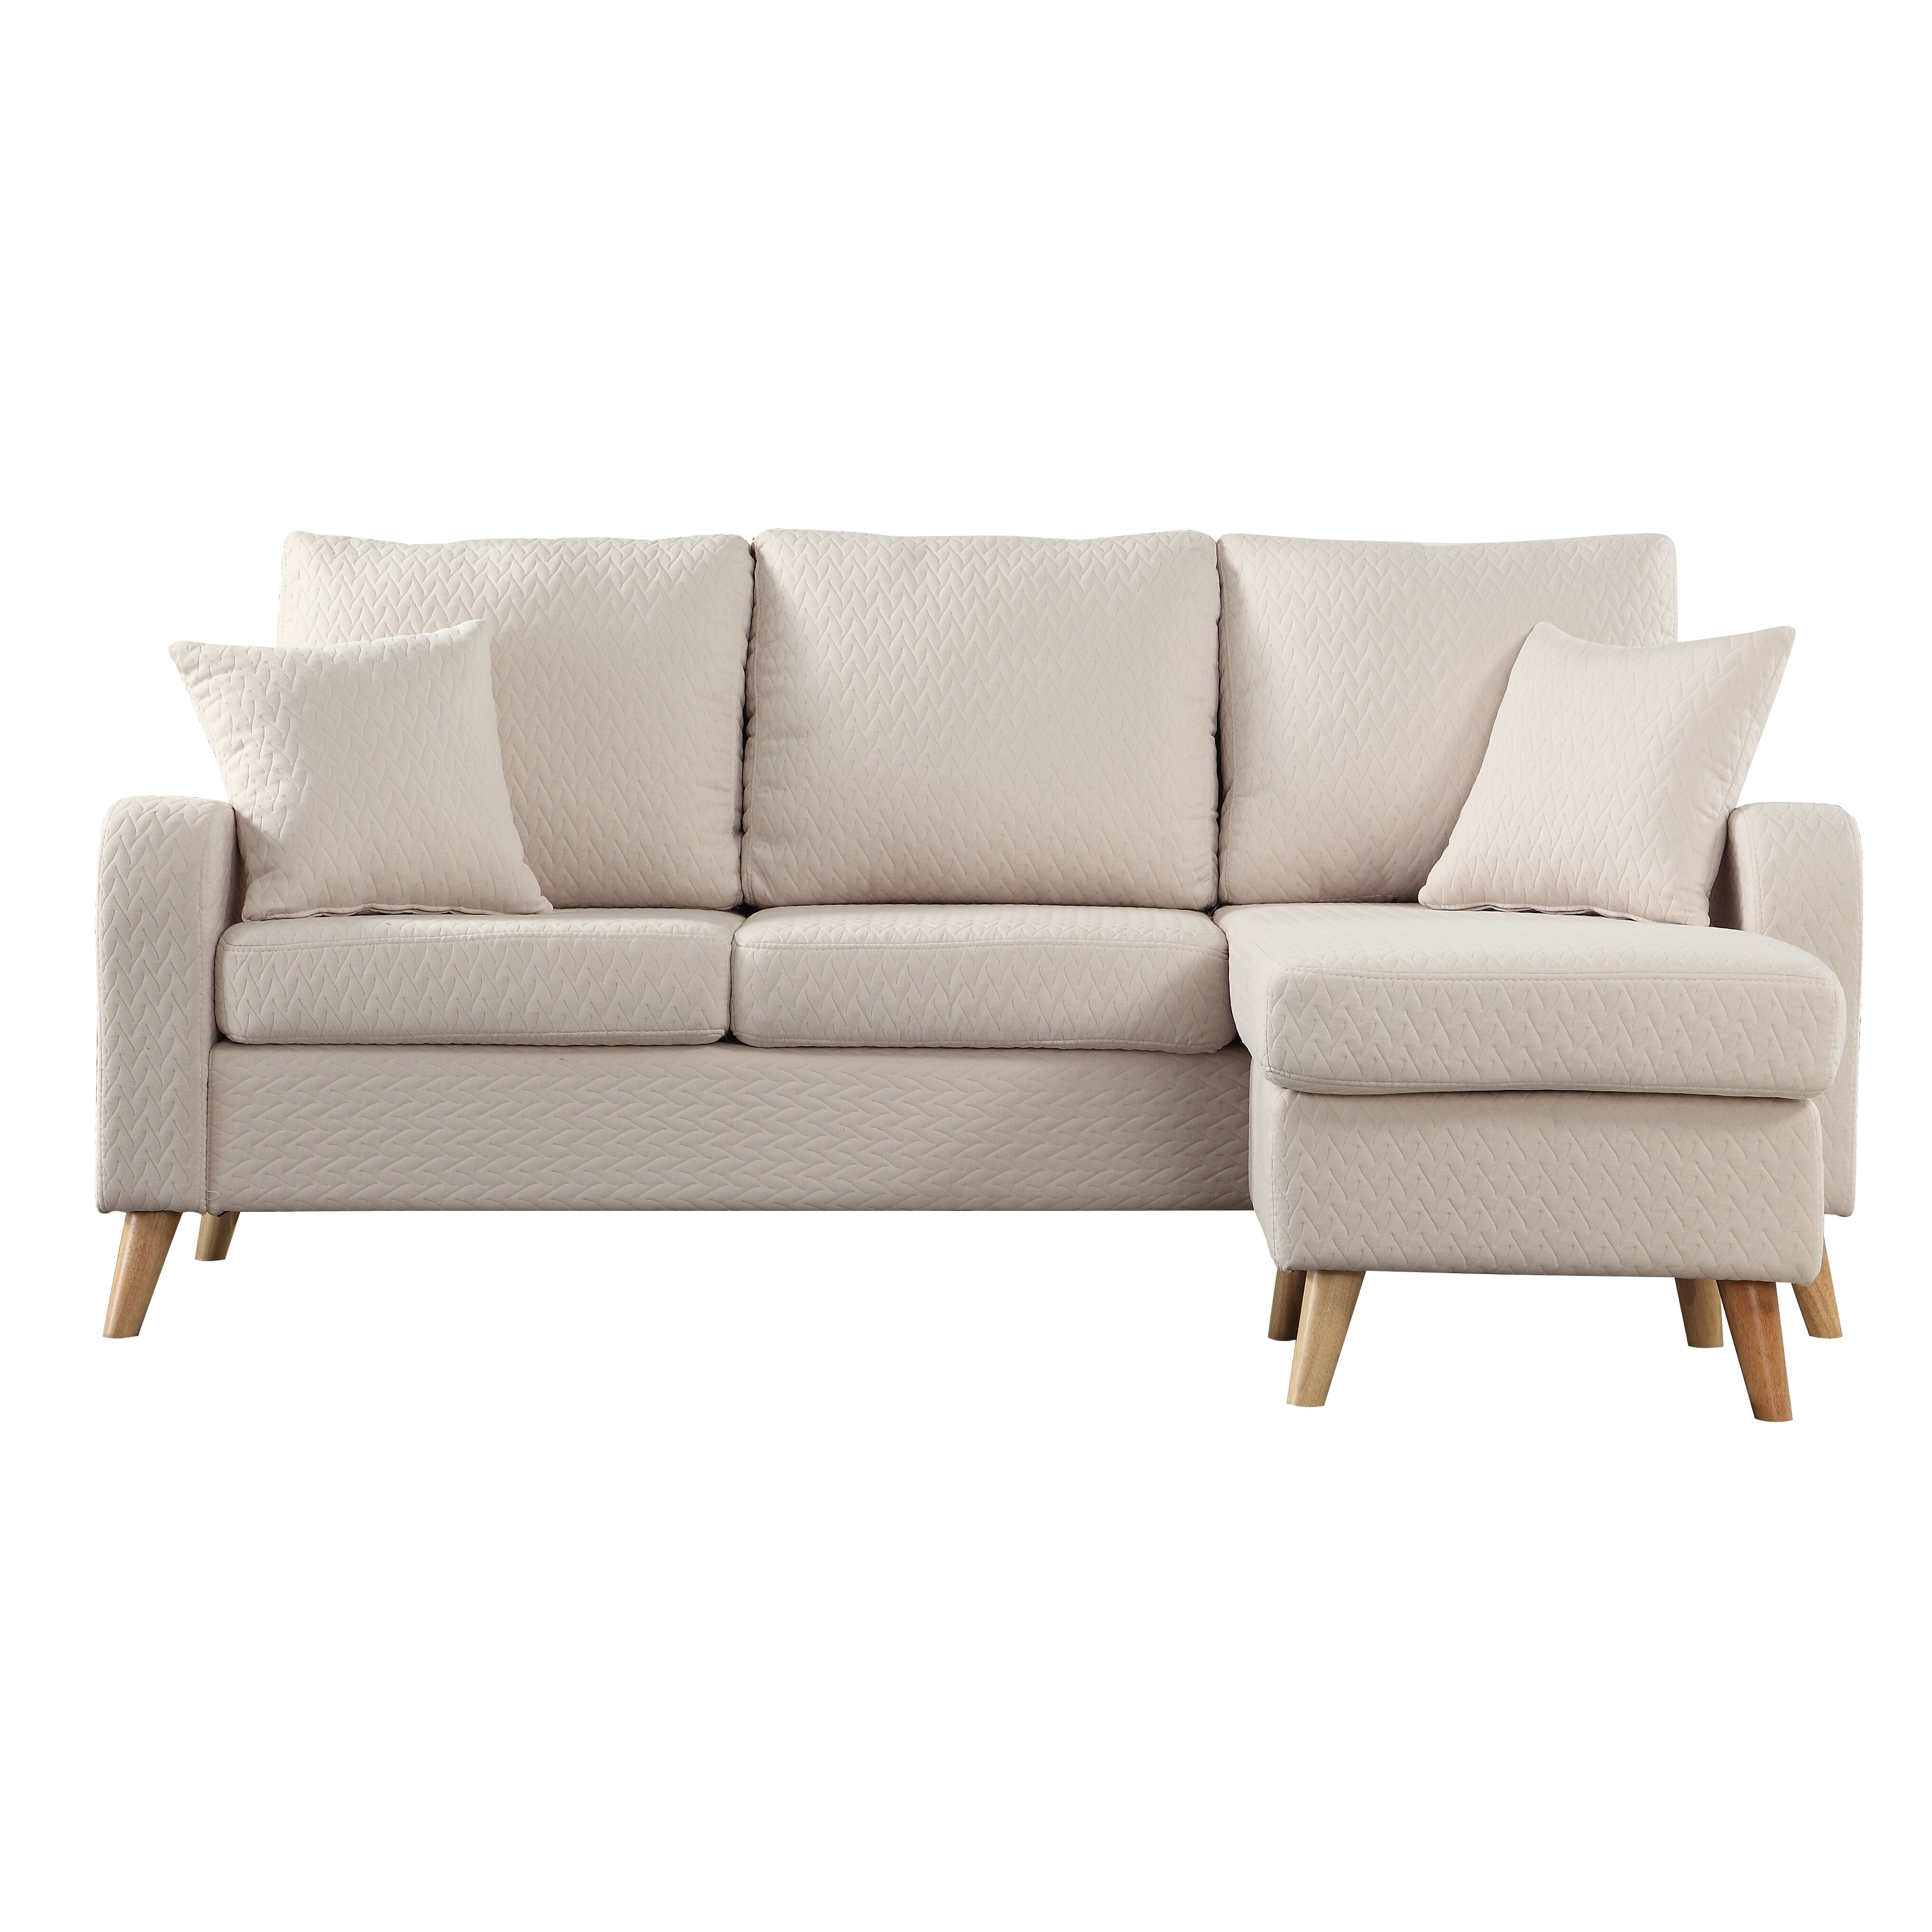 Madison home usa reversible chaise sectional reviews for Buy sofa online usa